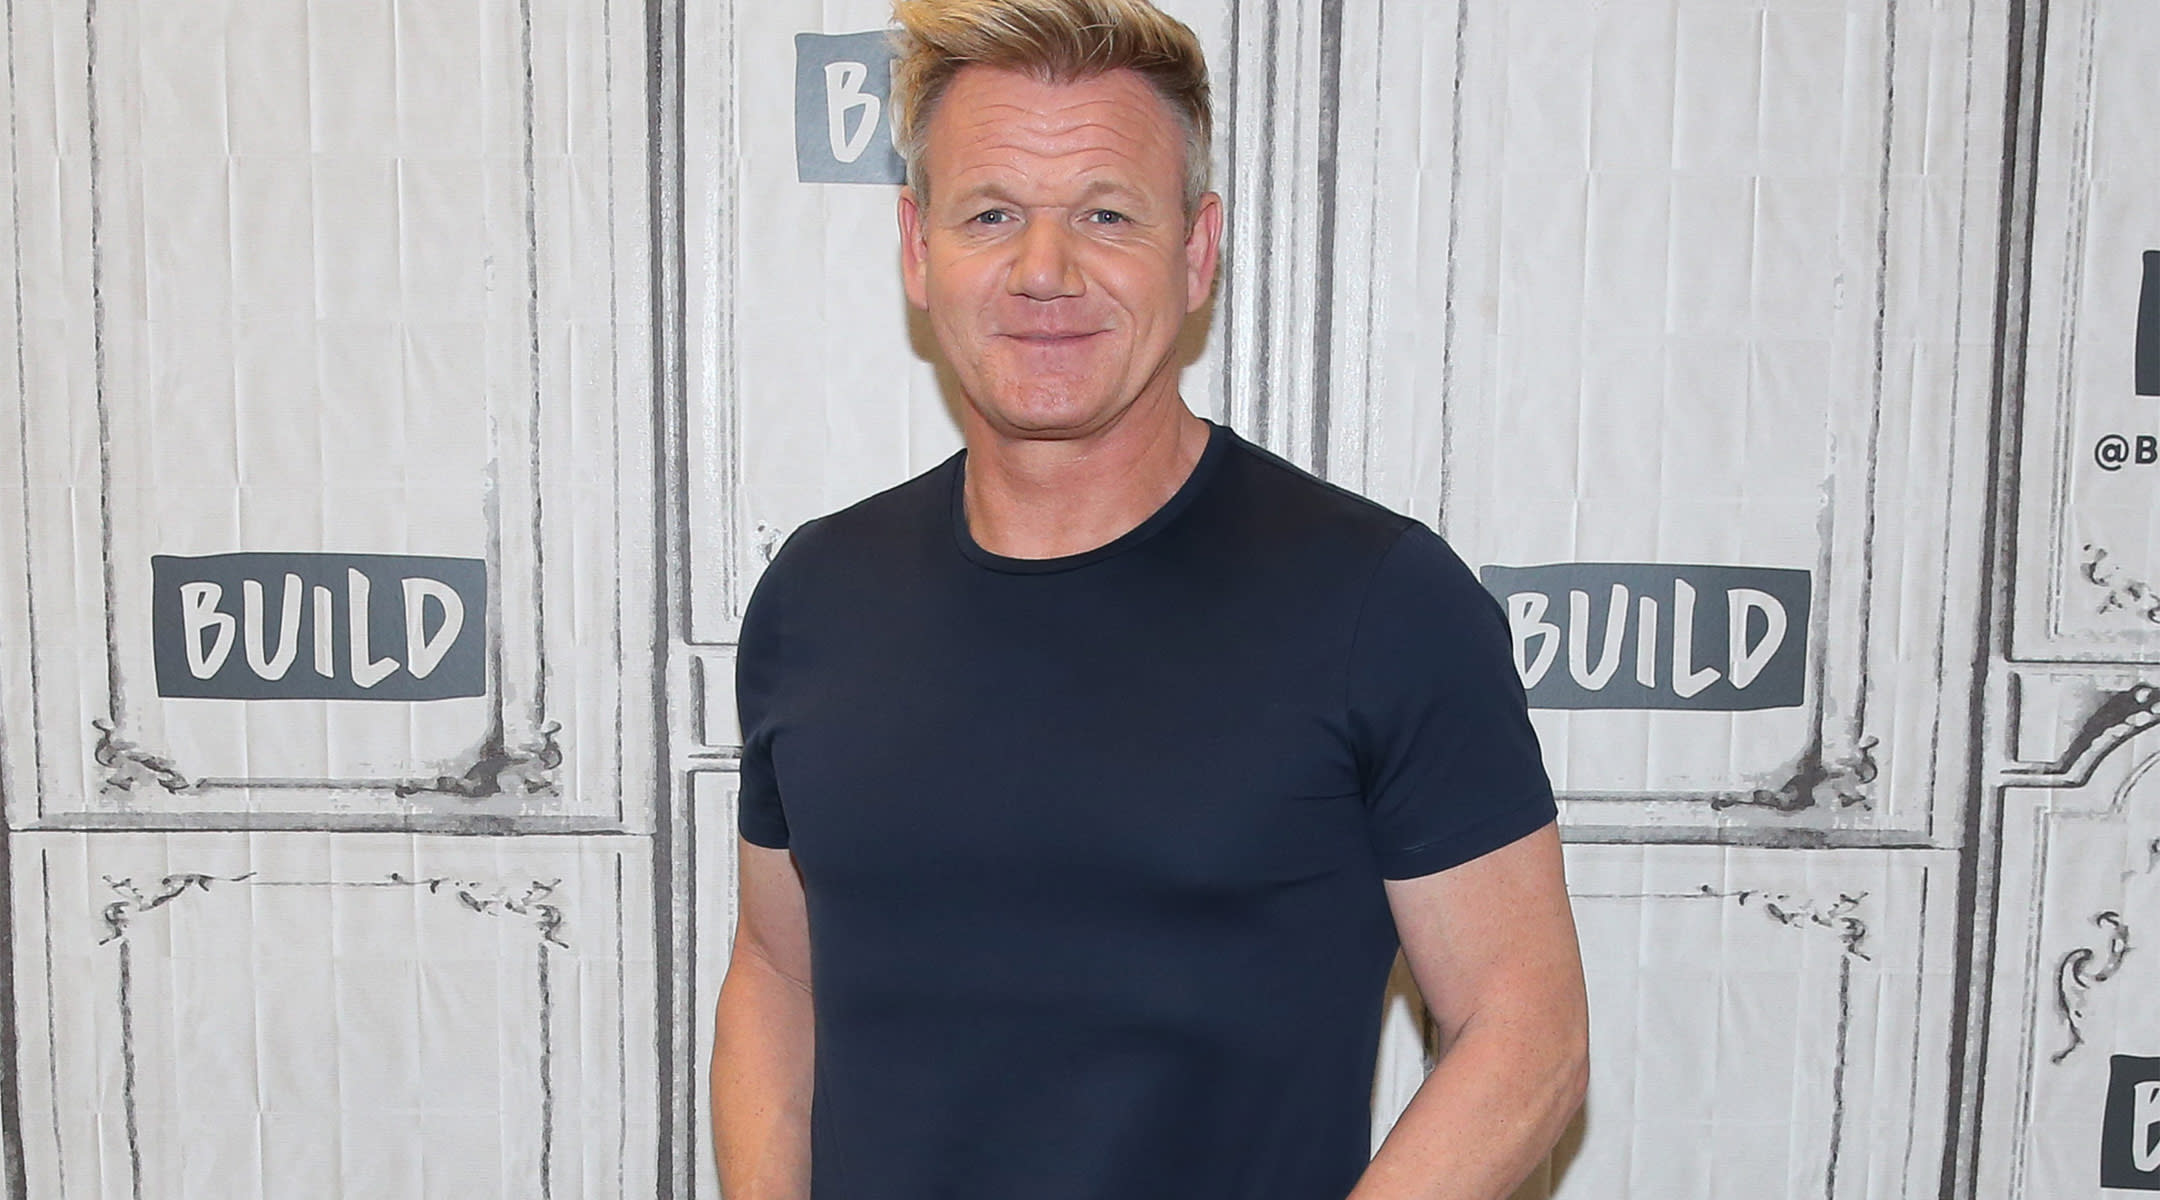 Gordon Ramsay's Baby Sports His Trademark Scowl During First Haircut